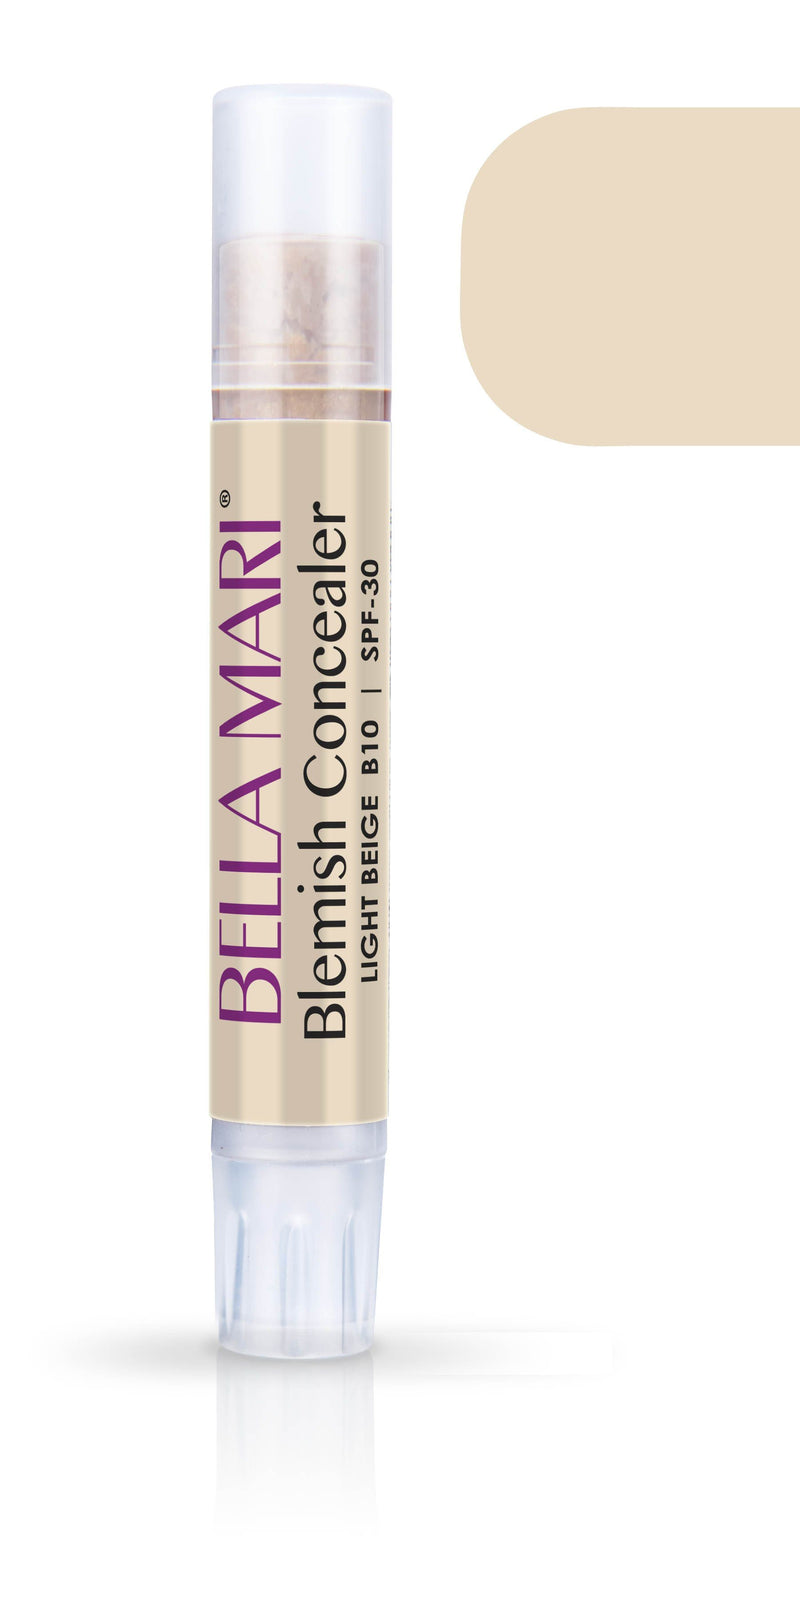 Bella Mari Natural Blemish Concealer Stick; 0.1floz - Bella Mari Natural Blemish Concealer Stick; 0.1floz - Light Beige